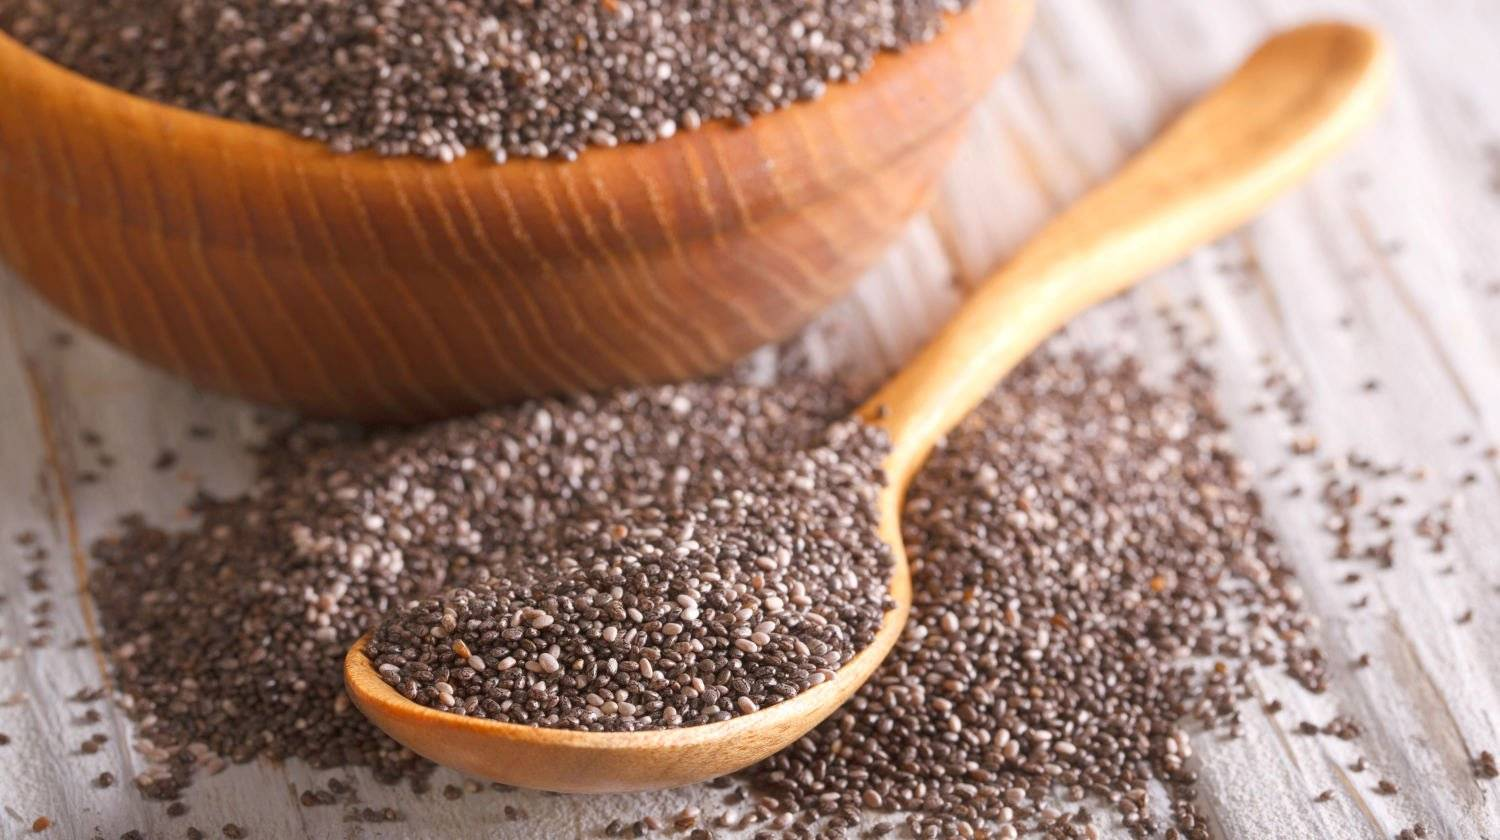 Featured  | Healthy Chia seeds in a wooden spoon | How To Eat Chia Seeds | 21 Chia Seed Uses